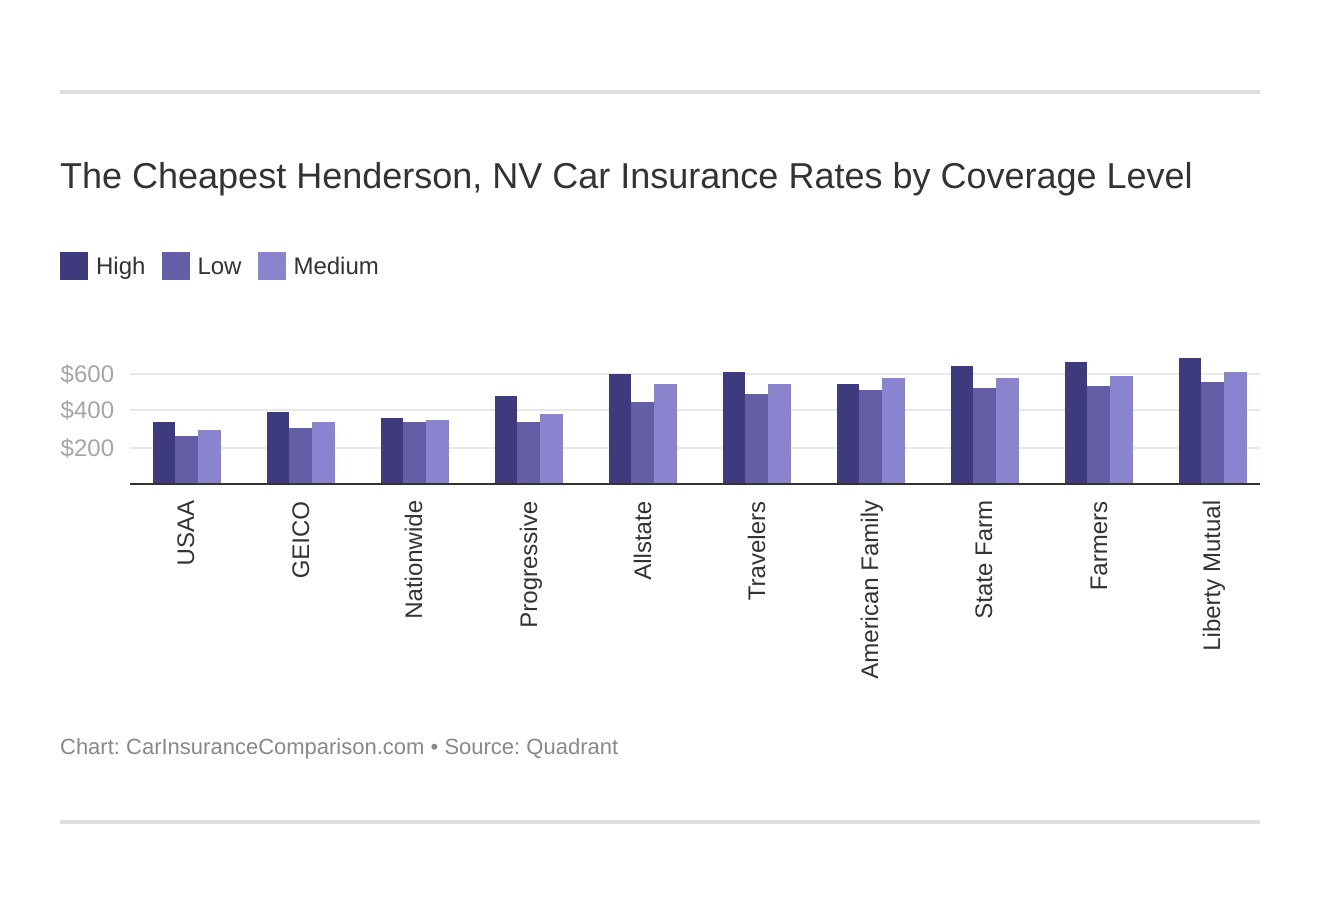 The Cheapest Henderson, NV Car Insurance Rates by Coverage Level